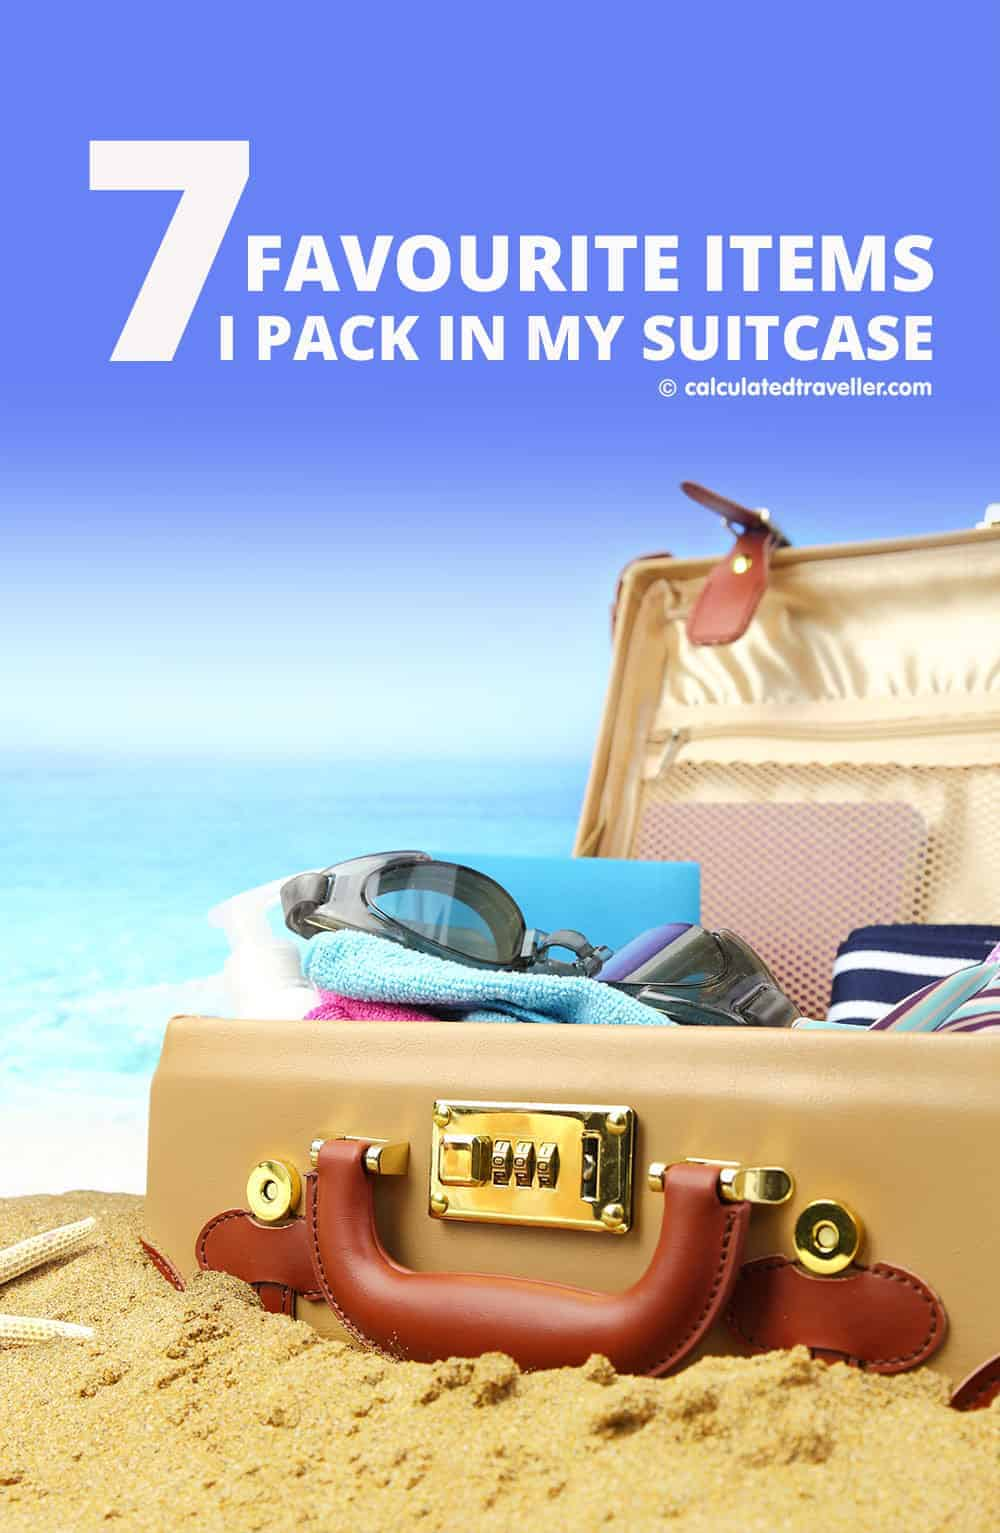 Seven Favourite Items I Pack in my Suitcase by Calculated Traveller | #pack #list #carryon #cruise #travel